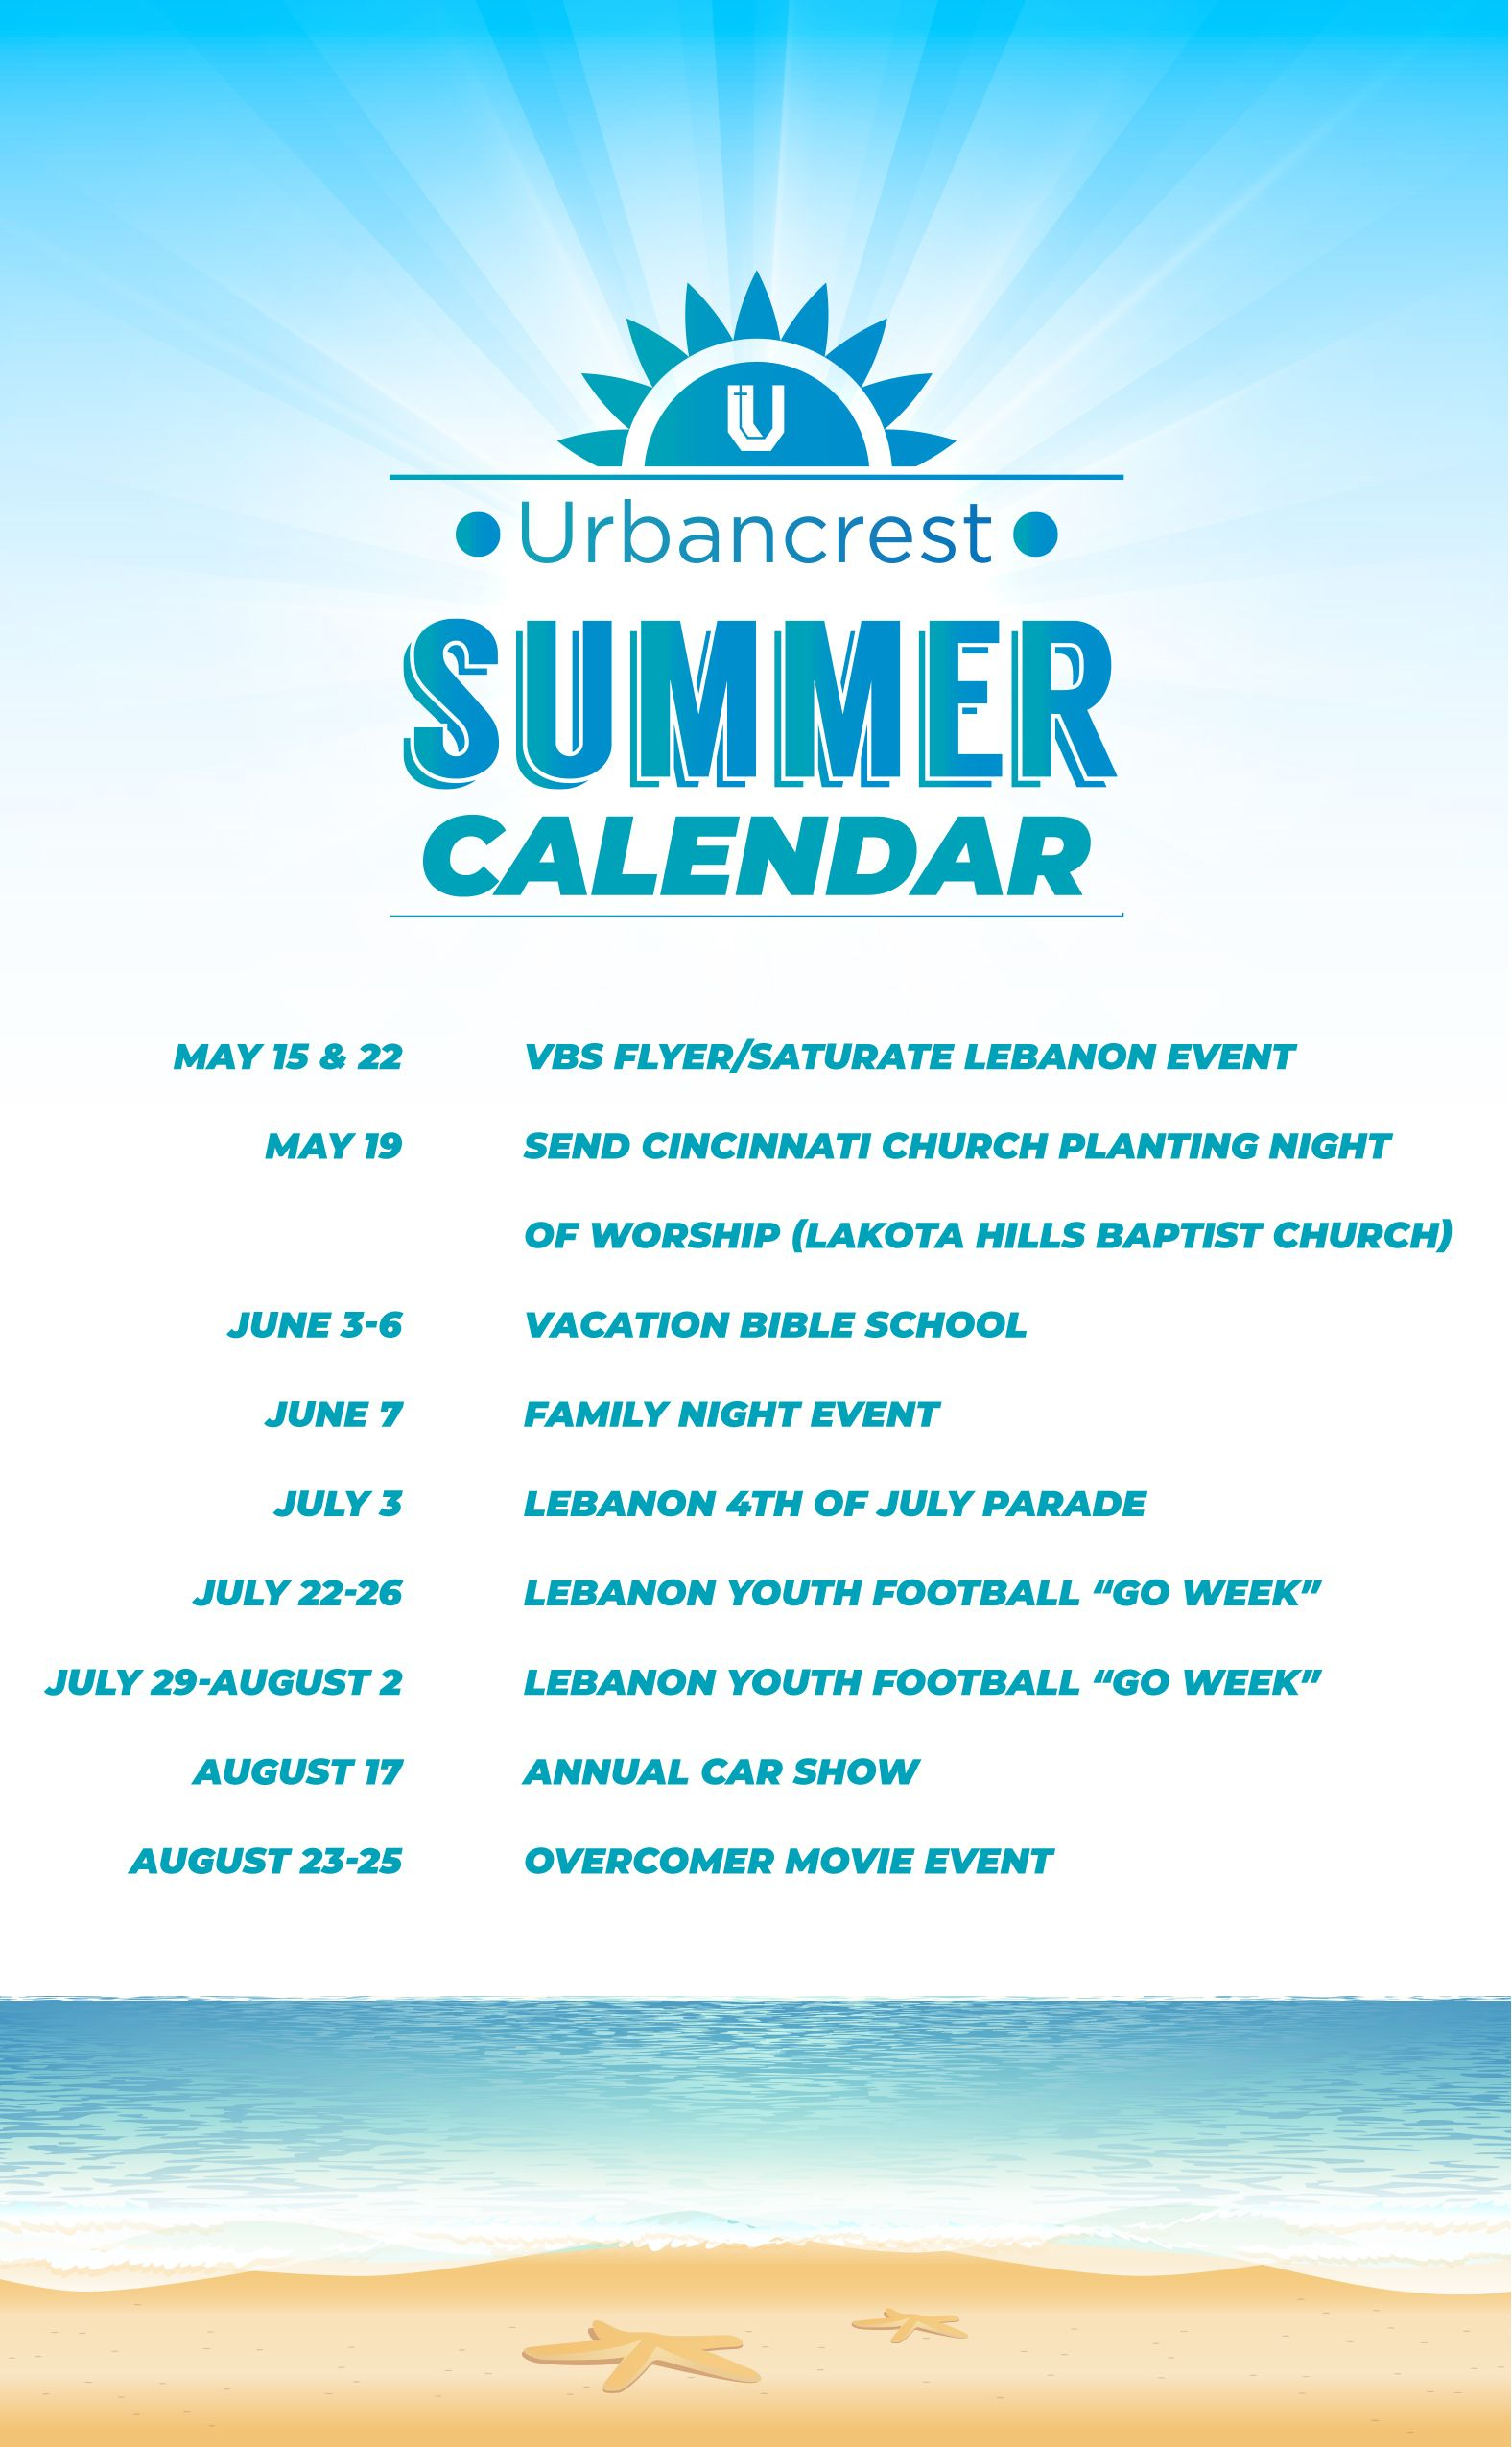 Urbancrest Summer Schedule